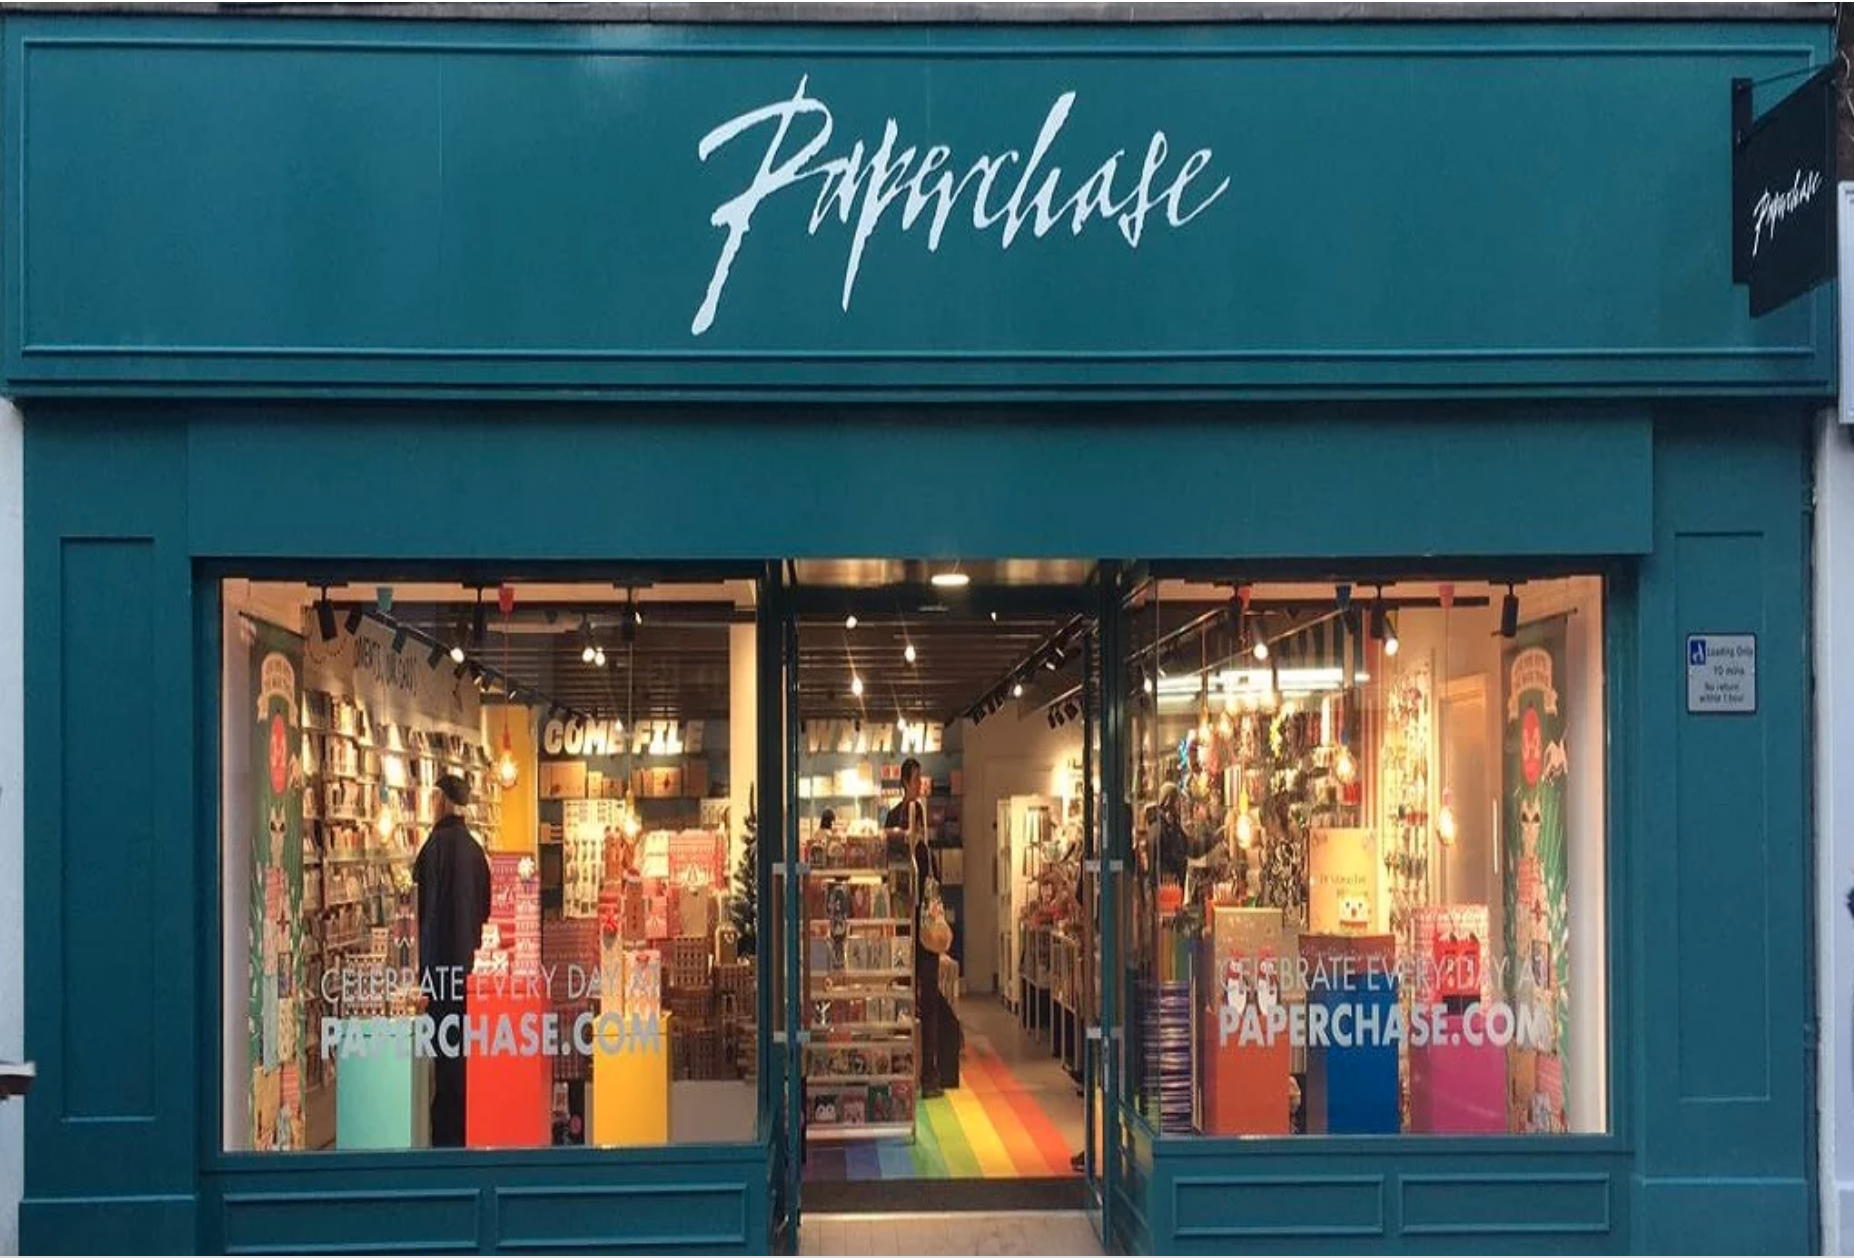 Above: Paperchase has re-opened in a new site in Henley.